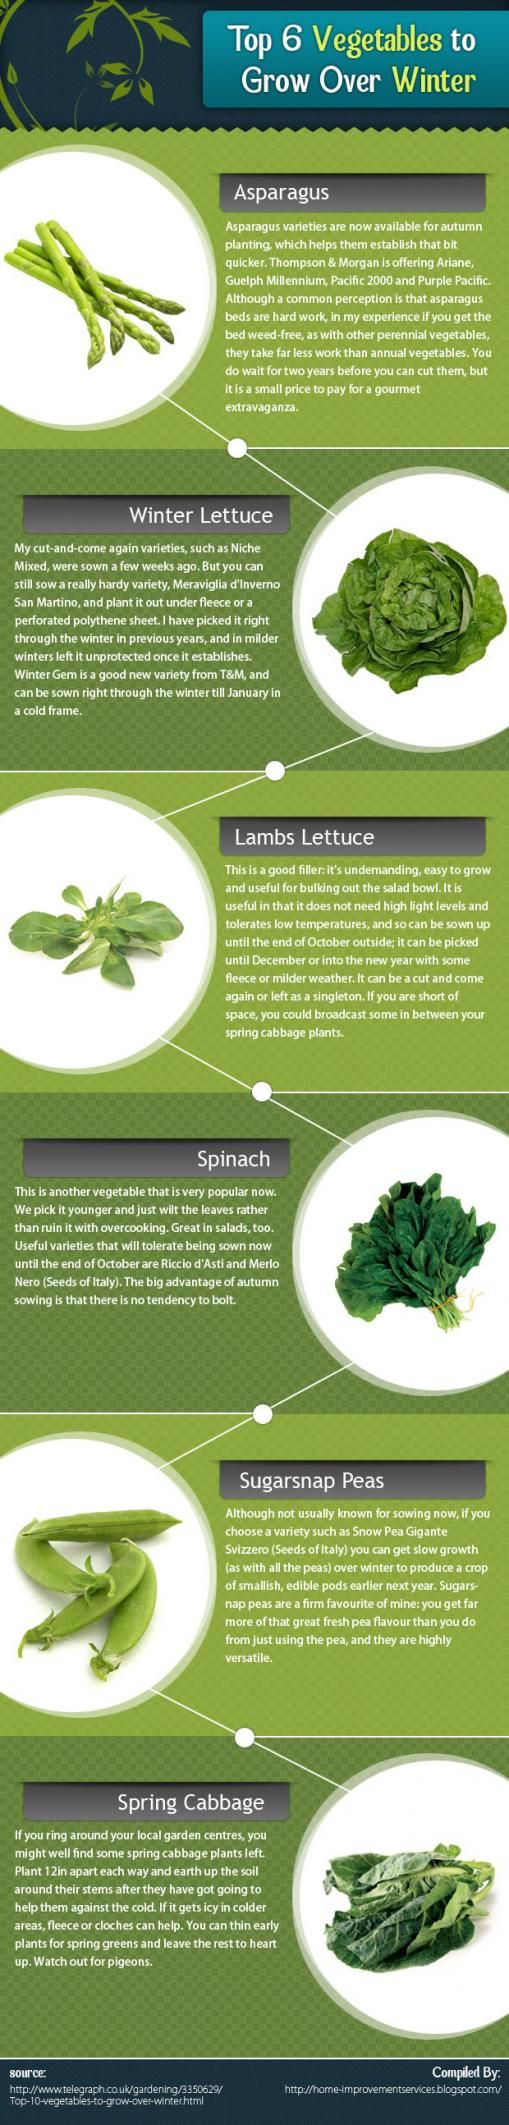 Loveinfographics.com » Submit & share infographics – Infographics Community » Top 6 Vegetables to Grow Over Winter